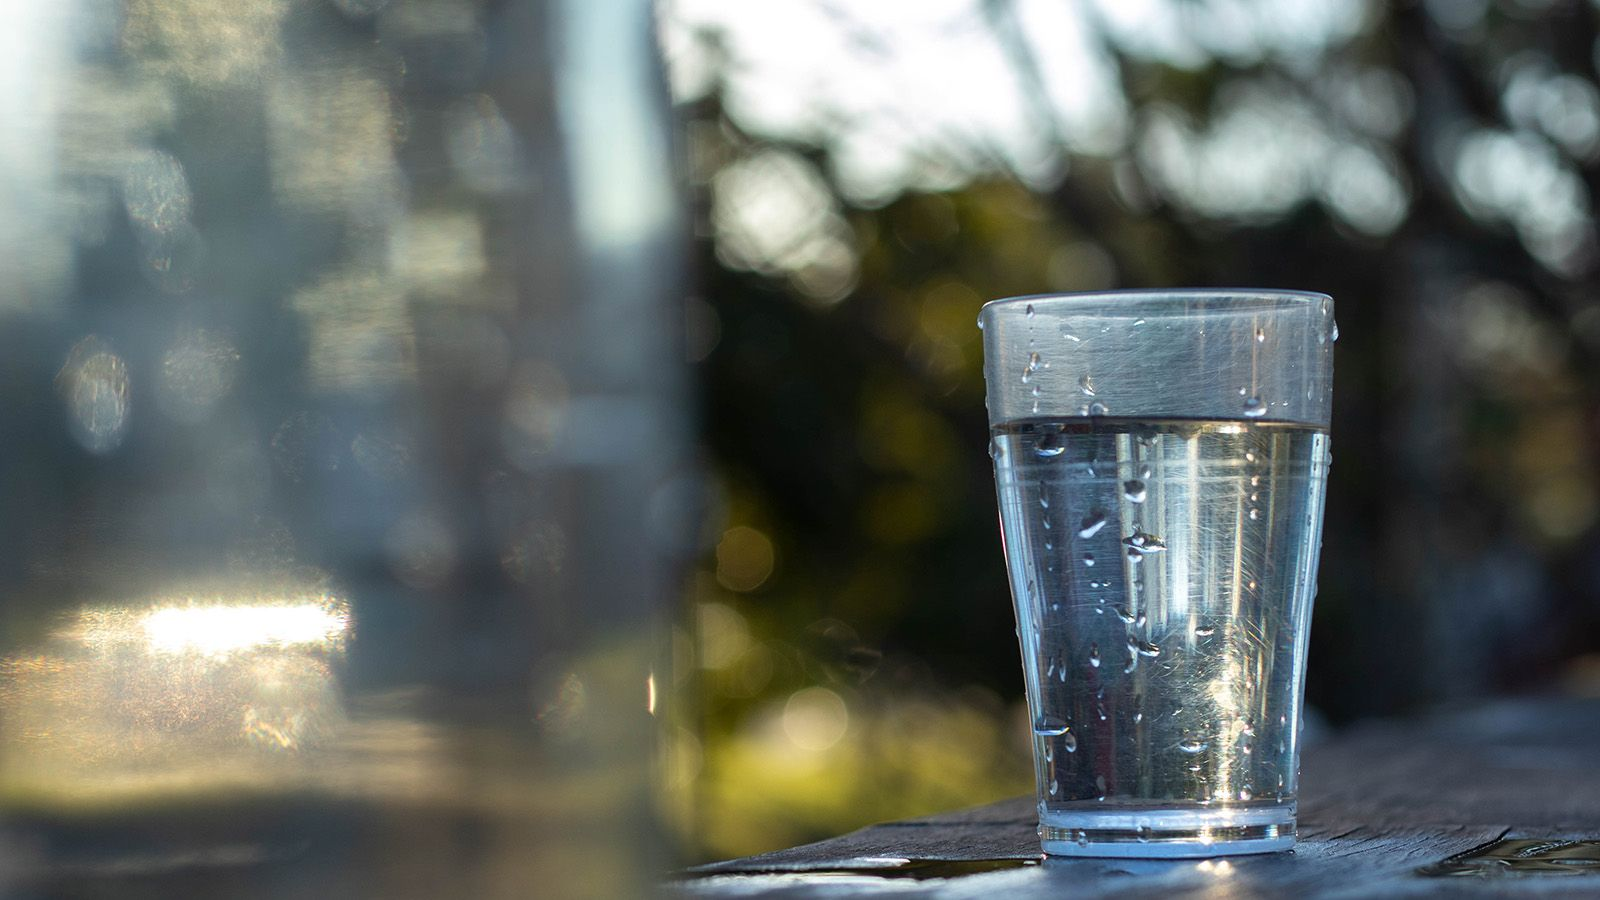 A drinking glass filled with water banner image